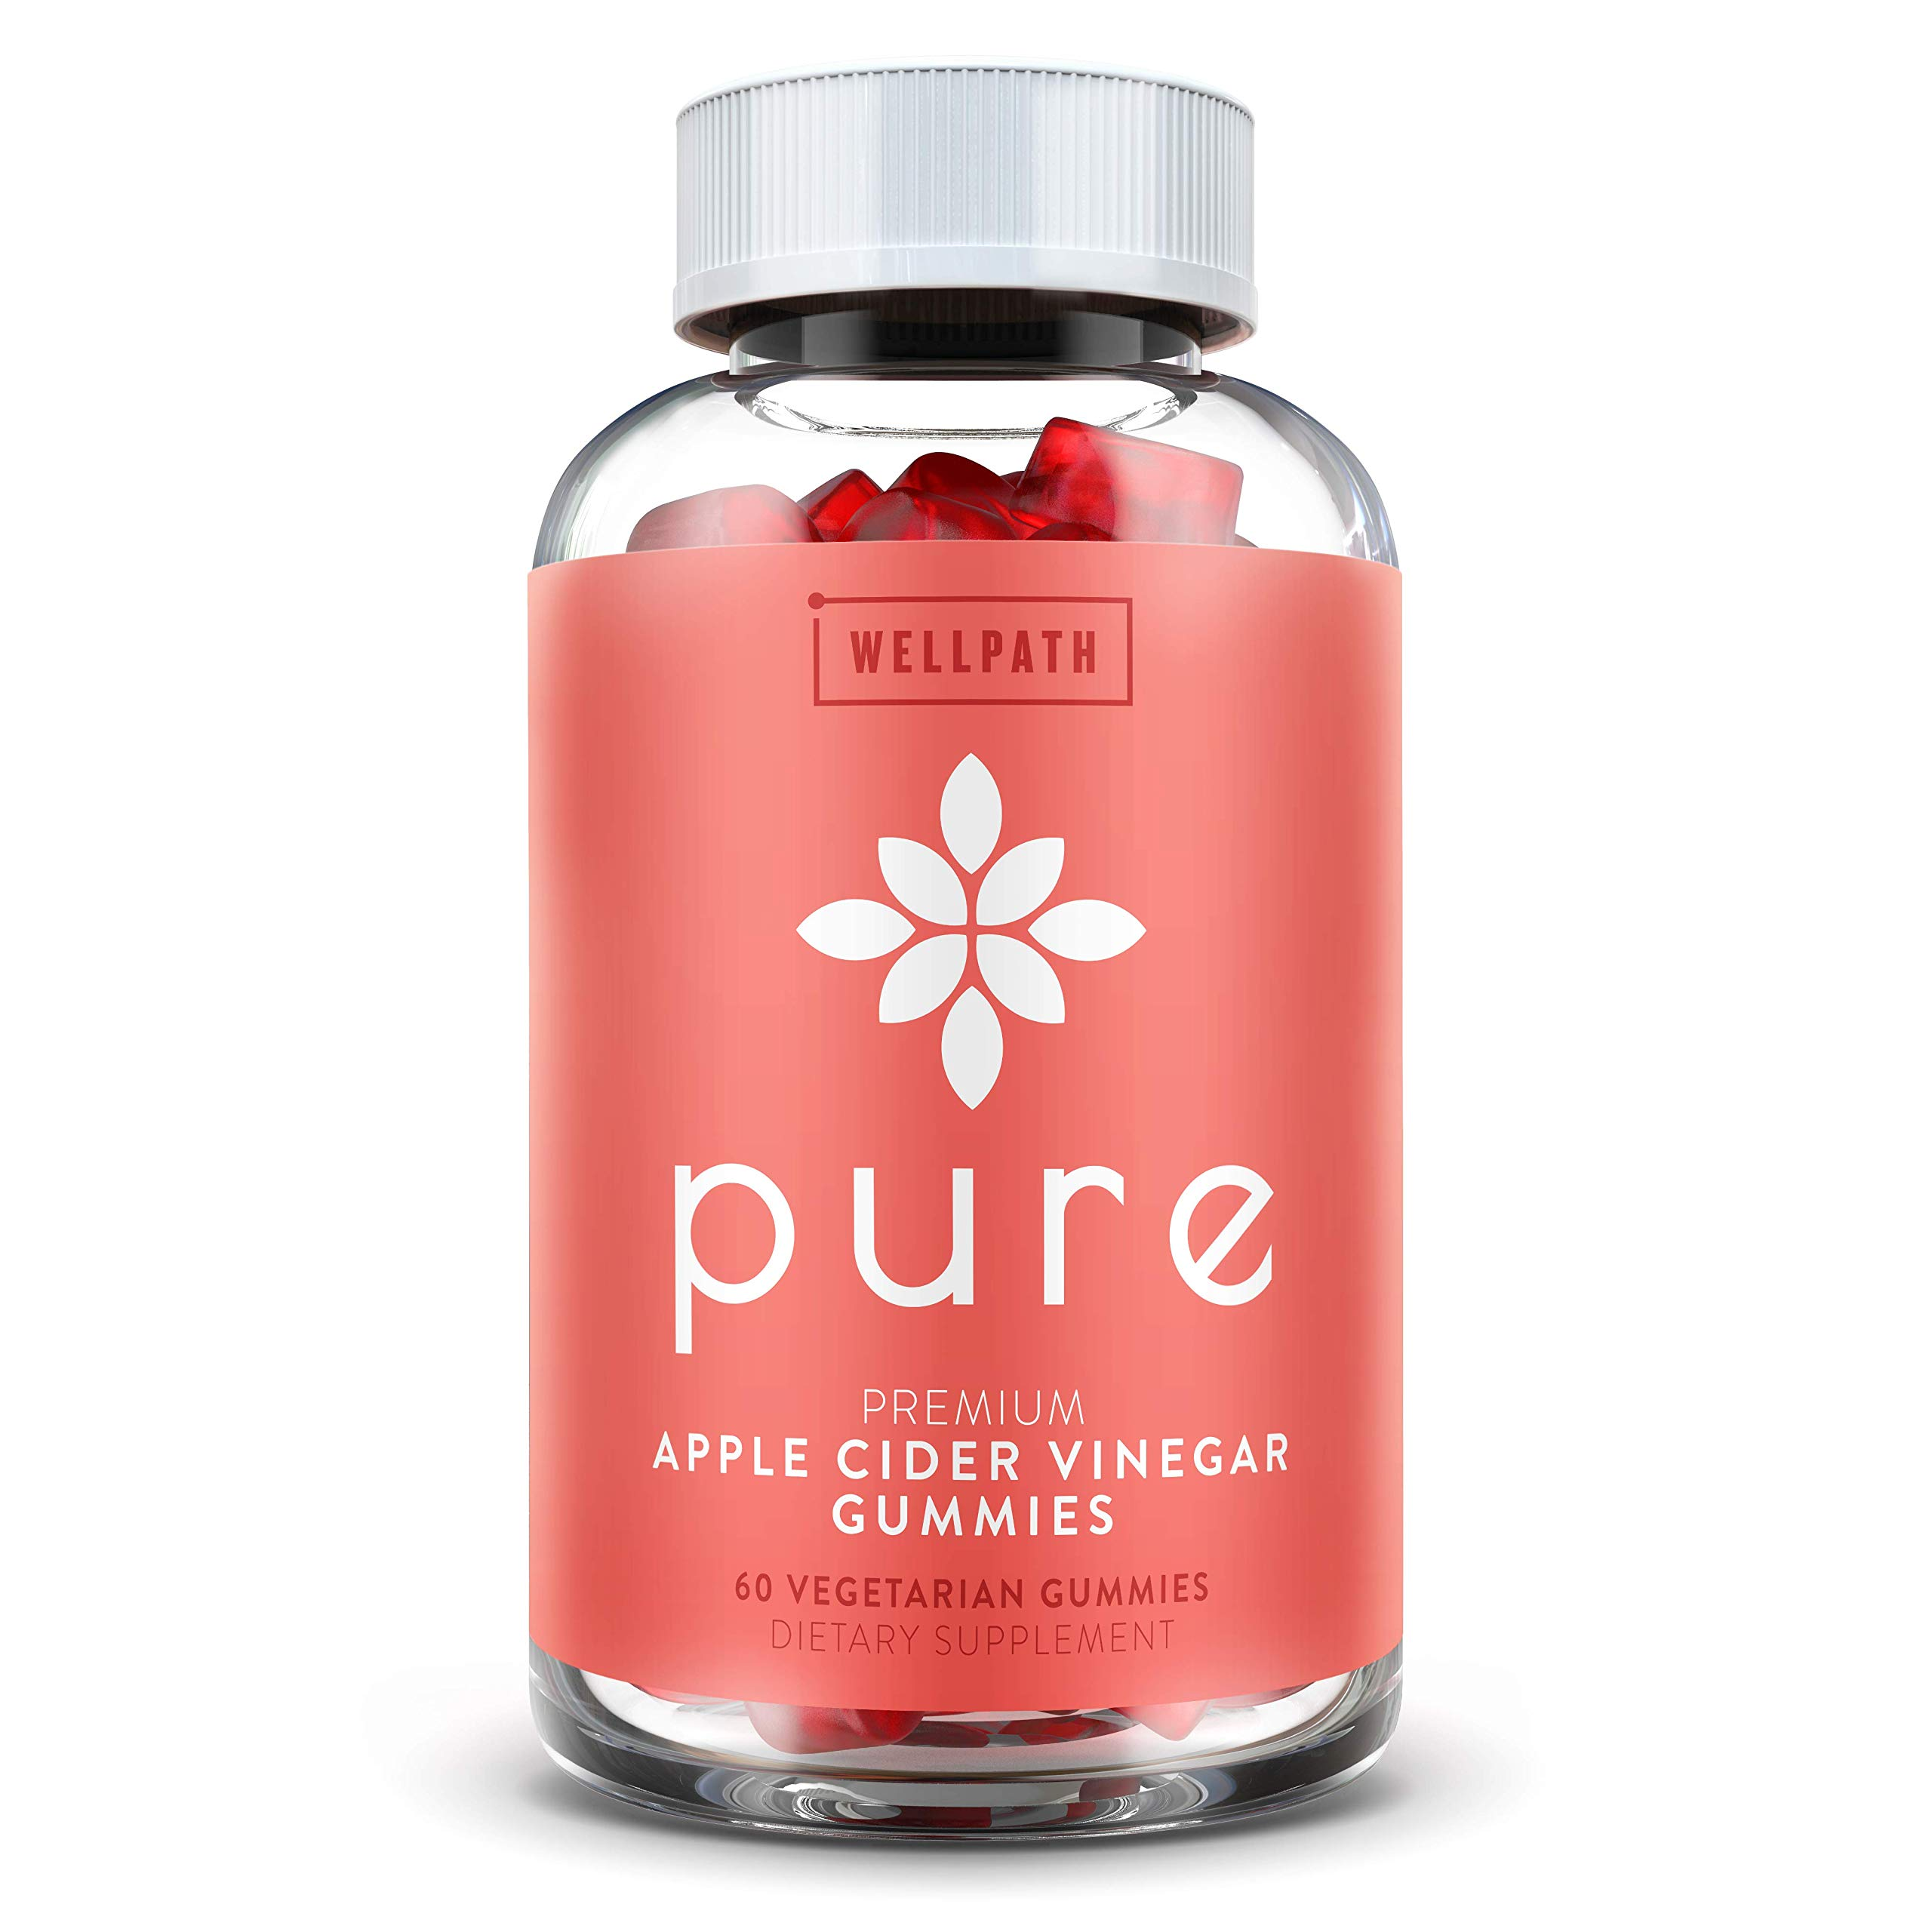 Pure Apple Cider Vinegar Gummies - with Raw, Organic, Unfiltered ACV from The Mother - Gummy Alternative to Apple Cider Vinegar Capsules, Pills, Tablets - Detox, Cleanse Support, Immunity by WellPath